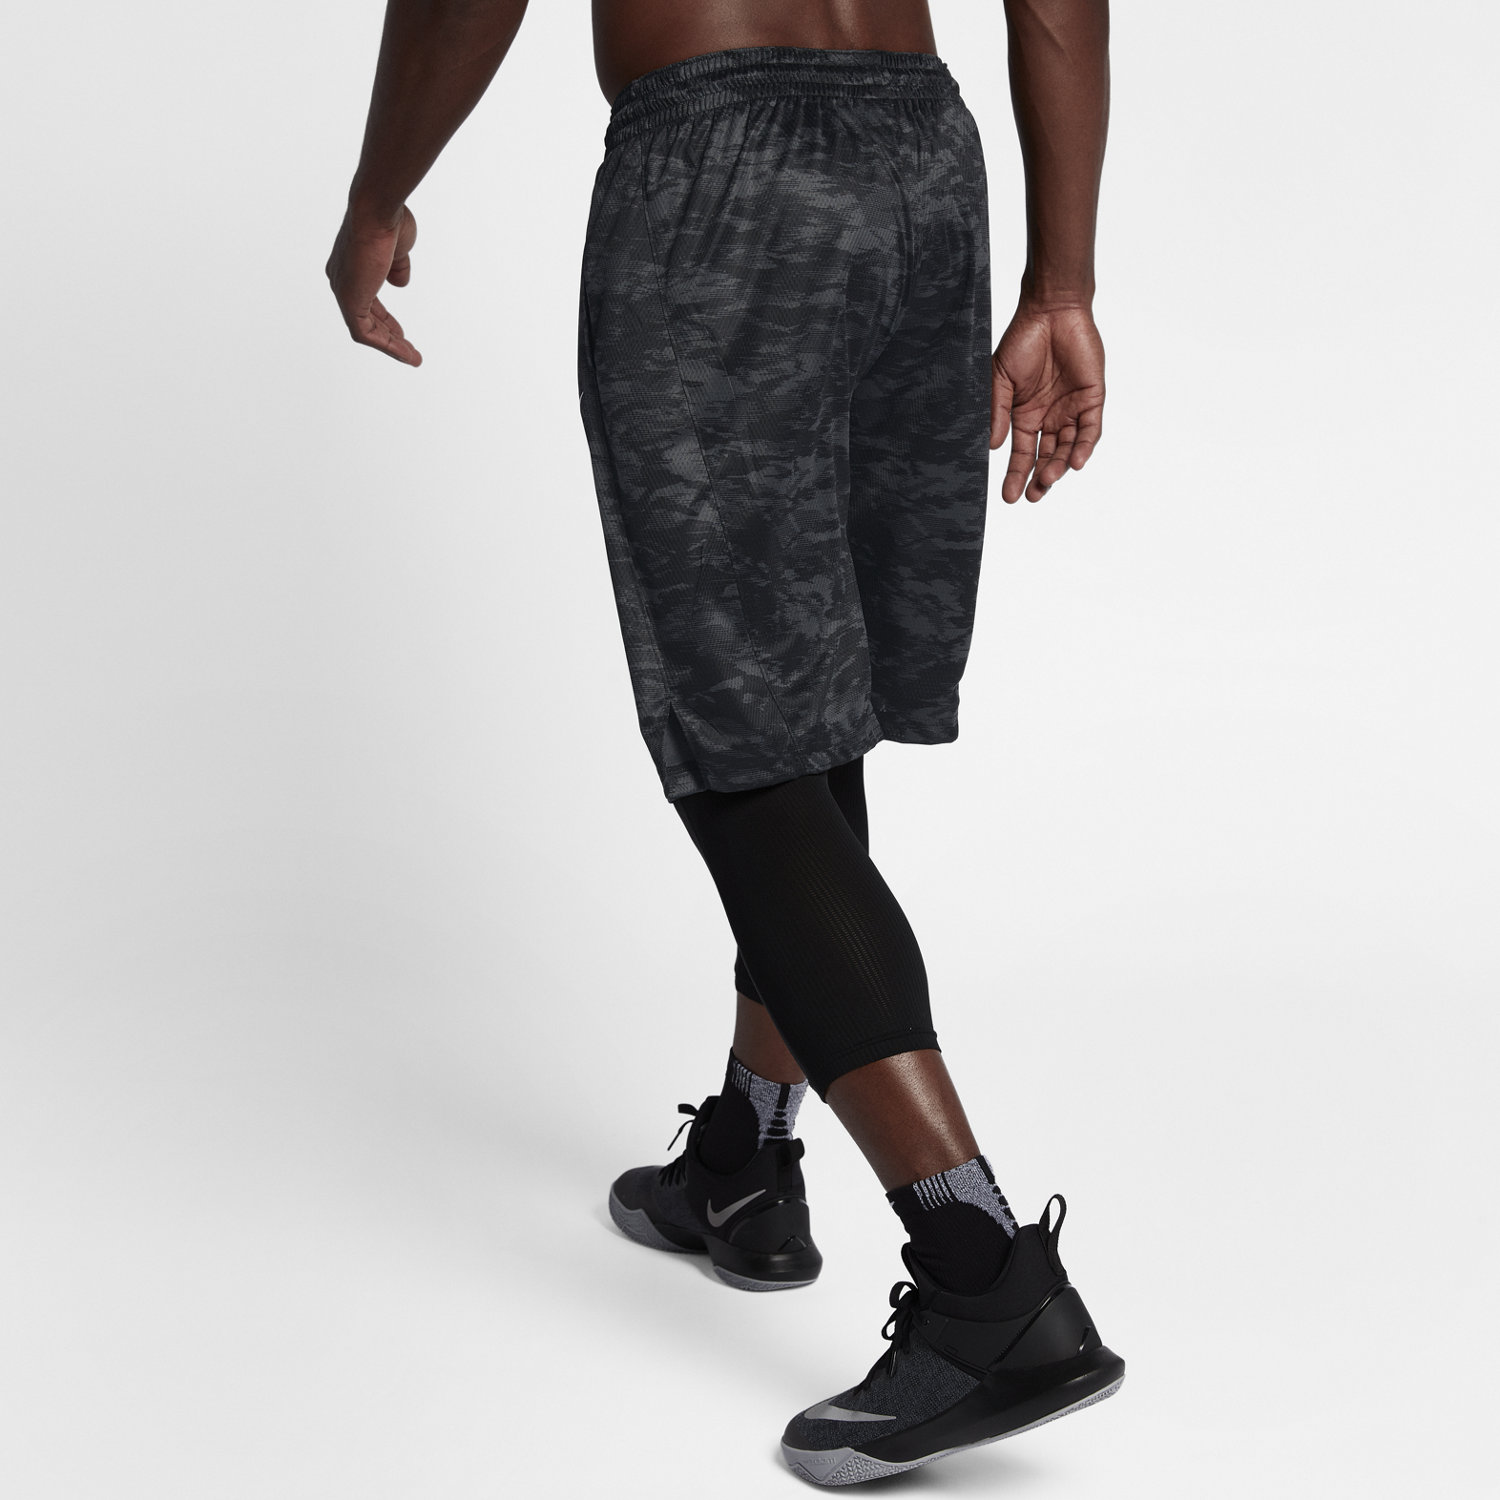 Mens basketball shorts on sale free shipping - Mens Basketball Shorts On Sale Free Shipping 29